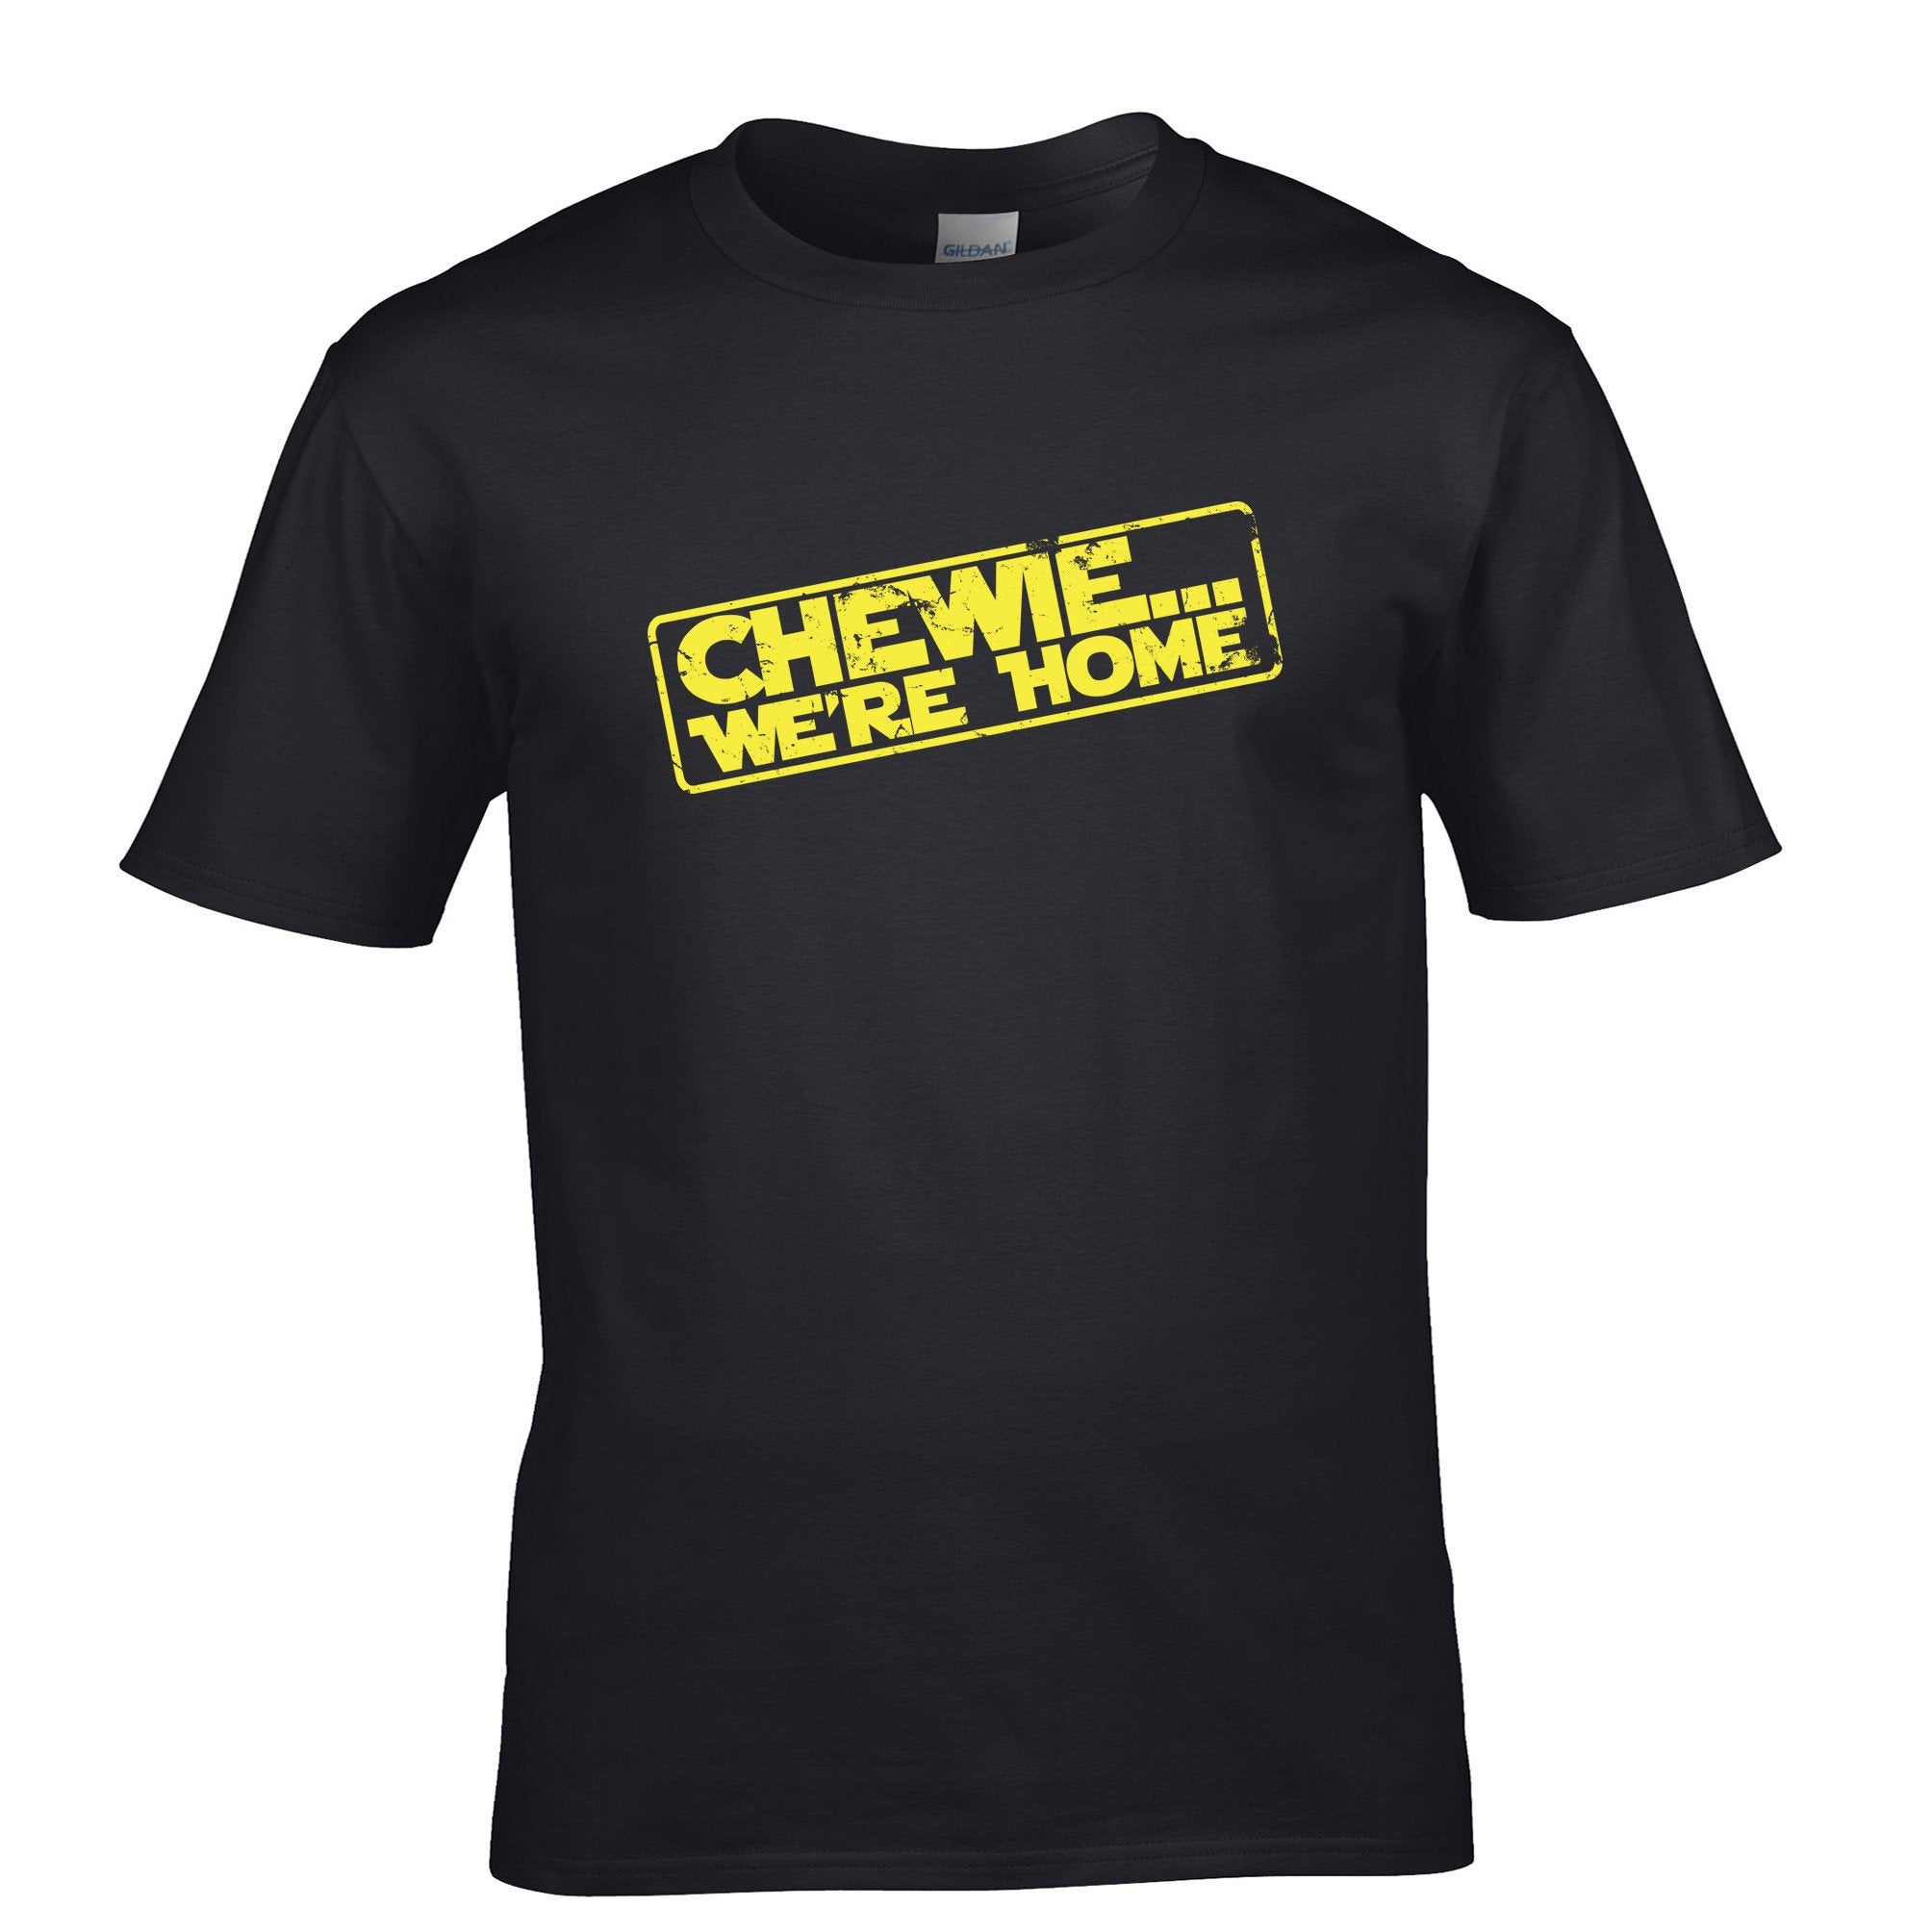 We're Home Chewie Mens T-Shirt